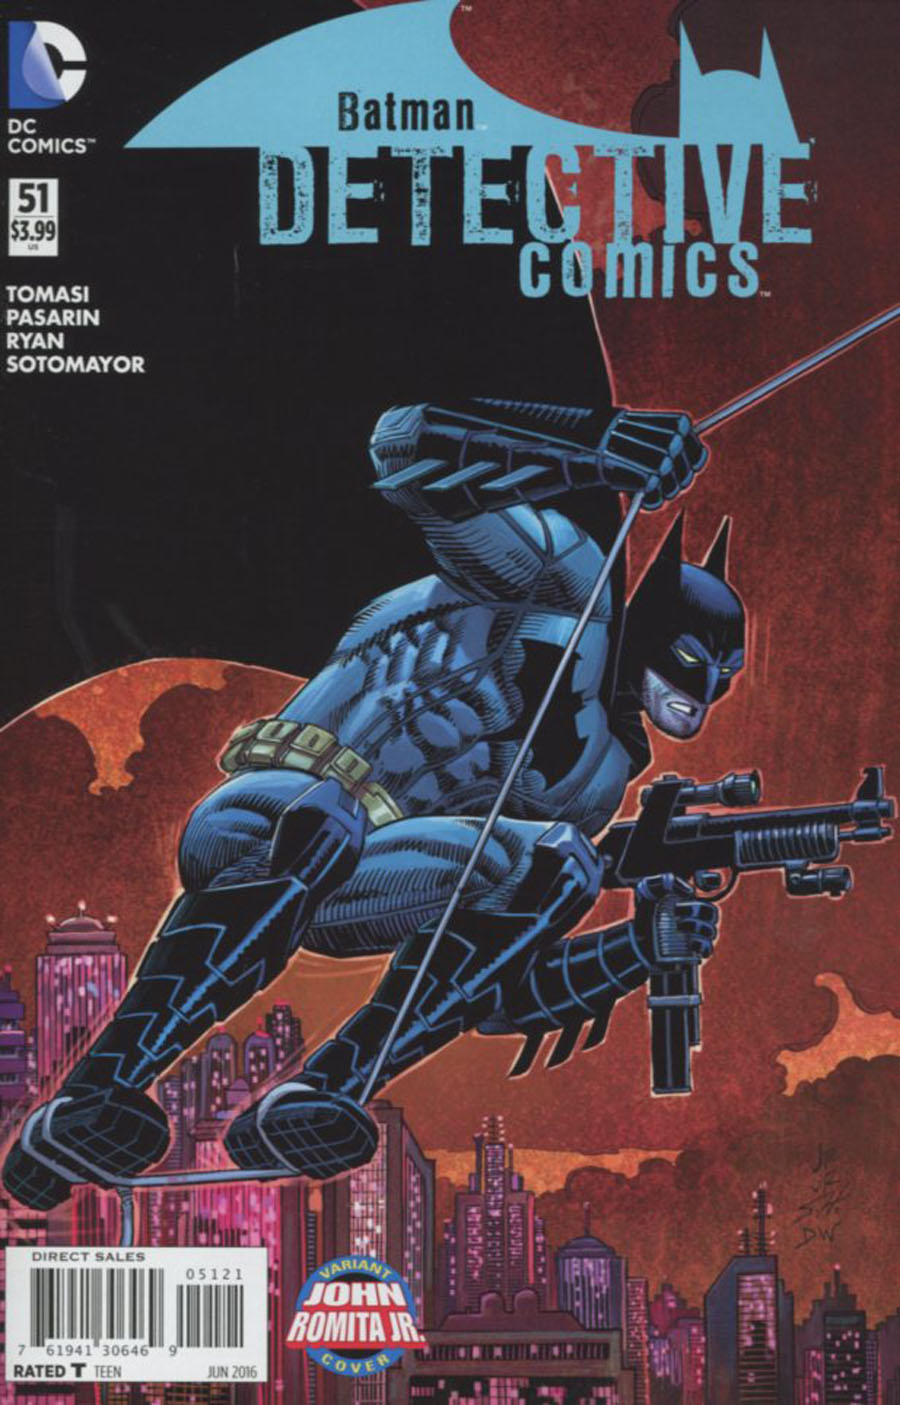 Detective Comics Vol 2 #51 Cover B Variant John Romita Jr Cover